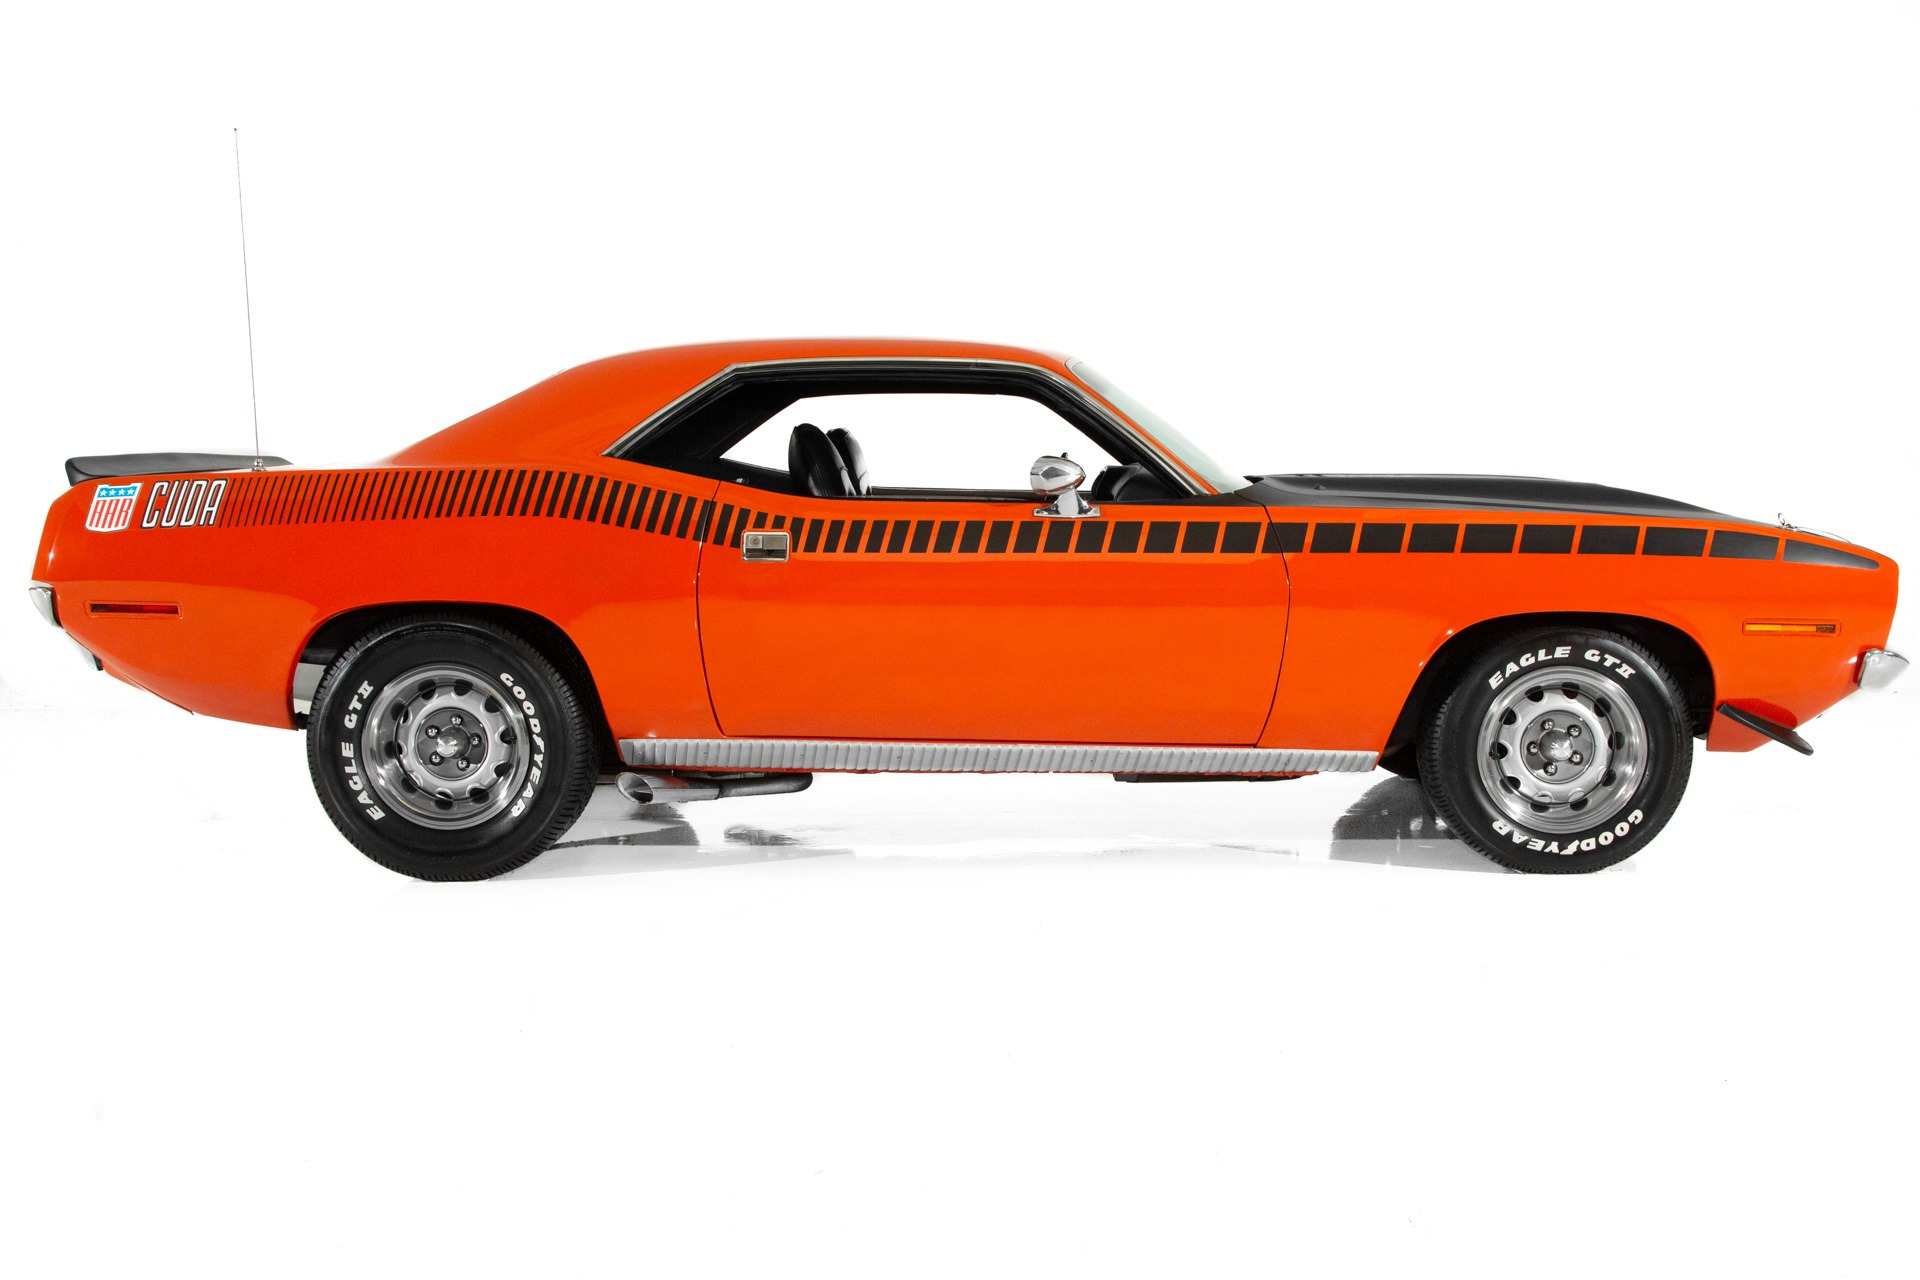 For Sale Used 1970 Plymouth Cuda AAR 340 Six Pack | American Dream Machines Des Moines IA 50309